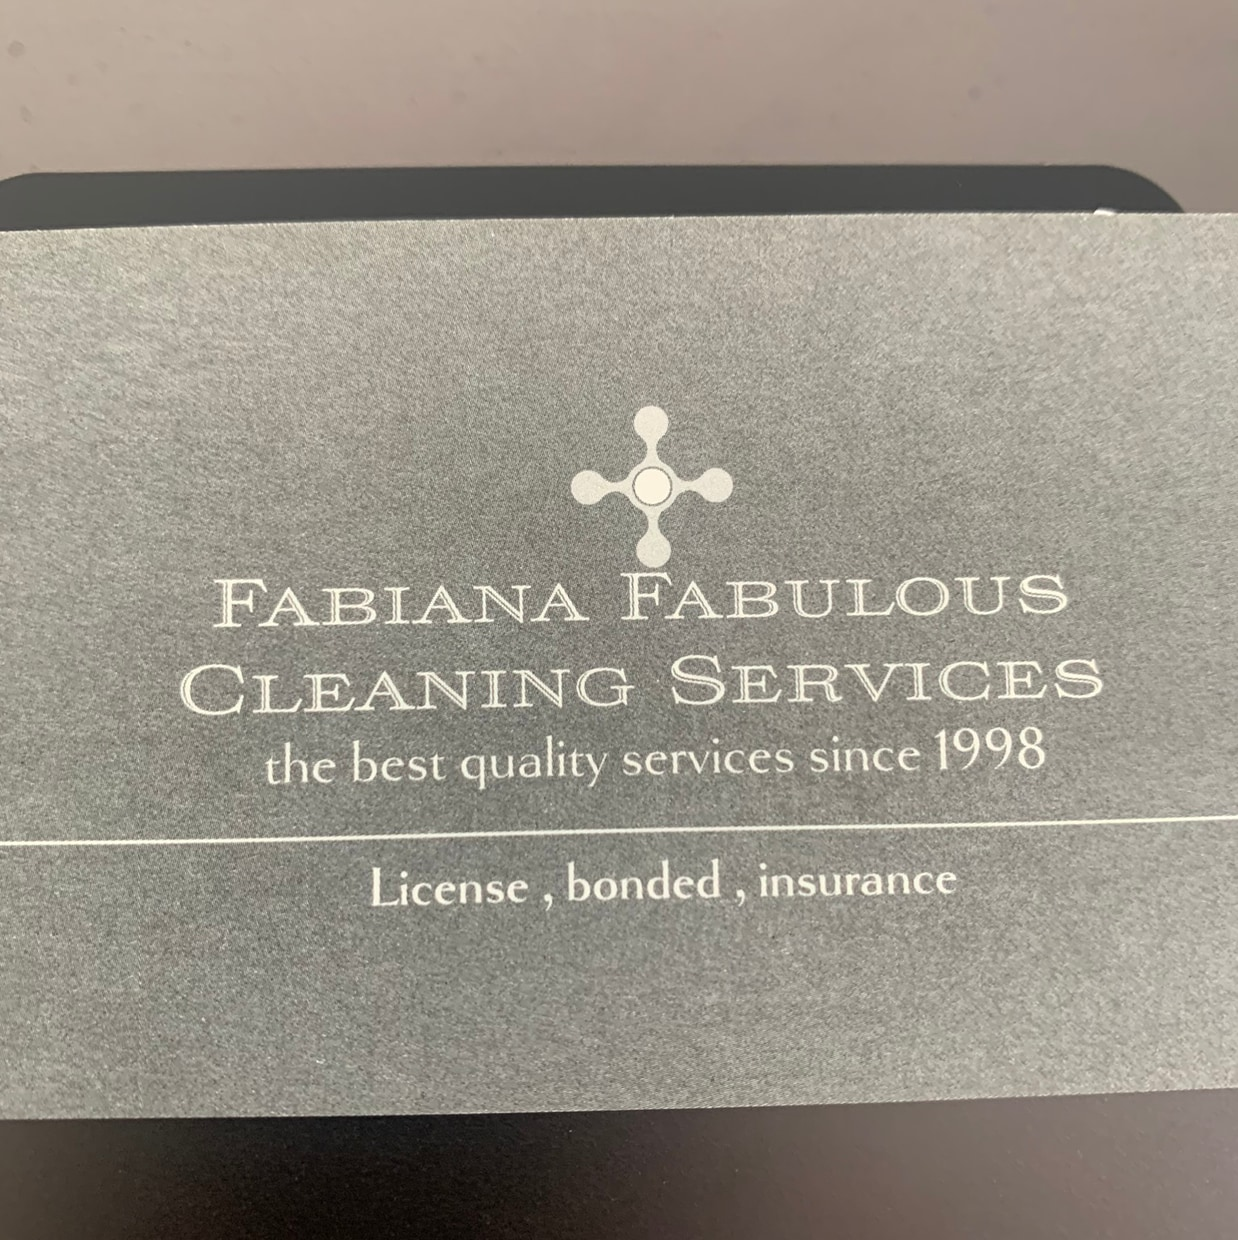 Fabiana Fabulous cleaning services